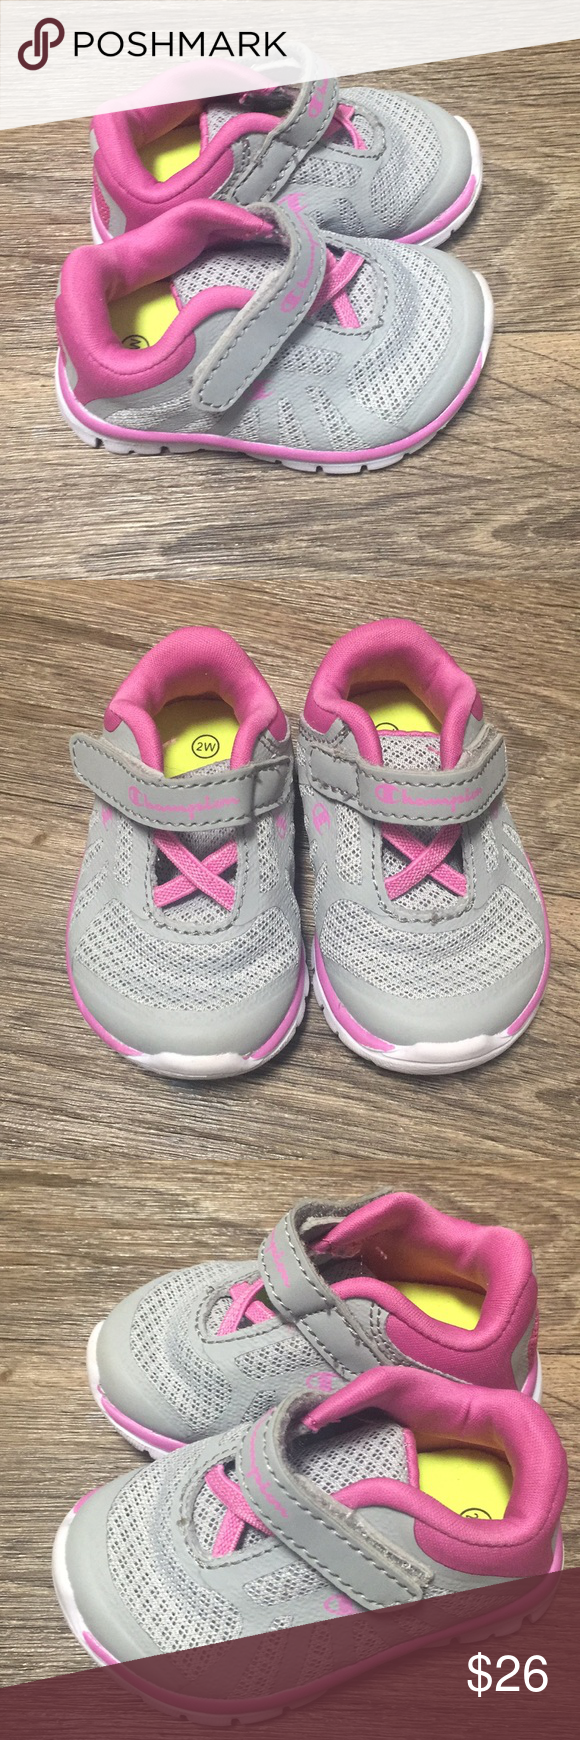 2ff1804509bbeb Final Drop  14 Champion Infant Shoes Size  2W Adorable Infant Shoes Colors   Pink and Grey Perfect for your little one Excellent Condition Champion Shoes  ...